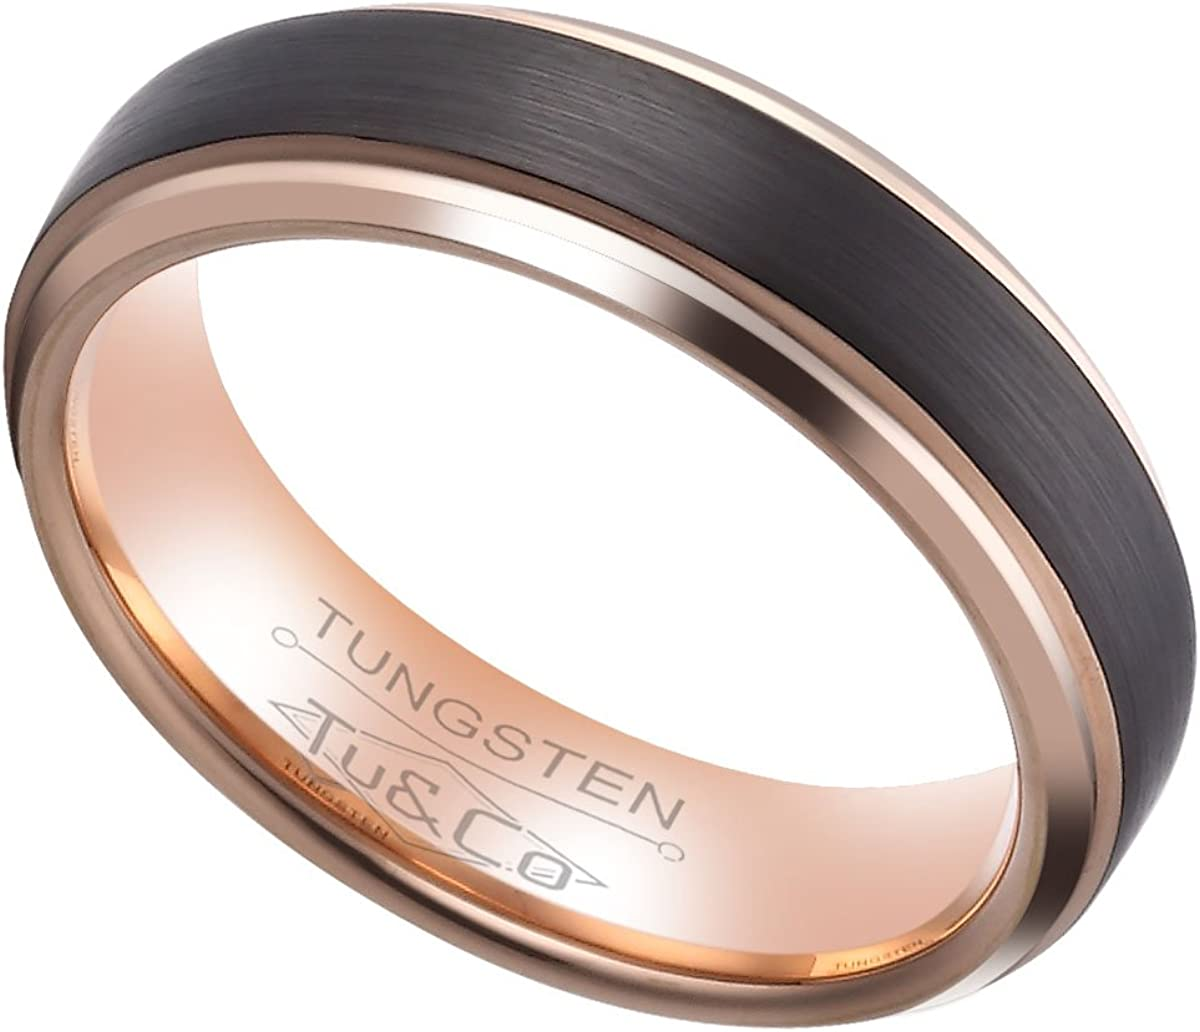 Tungsten Wedding Band Ring 6mm wide for Men Women Comfort Fit Black Brushed finish centre and 18k Rose Gold Plating Polished finish sides and inside Lifetime Satisfaction